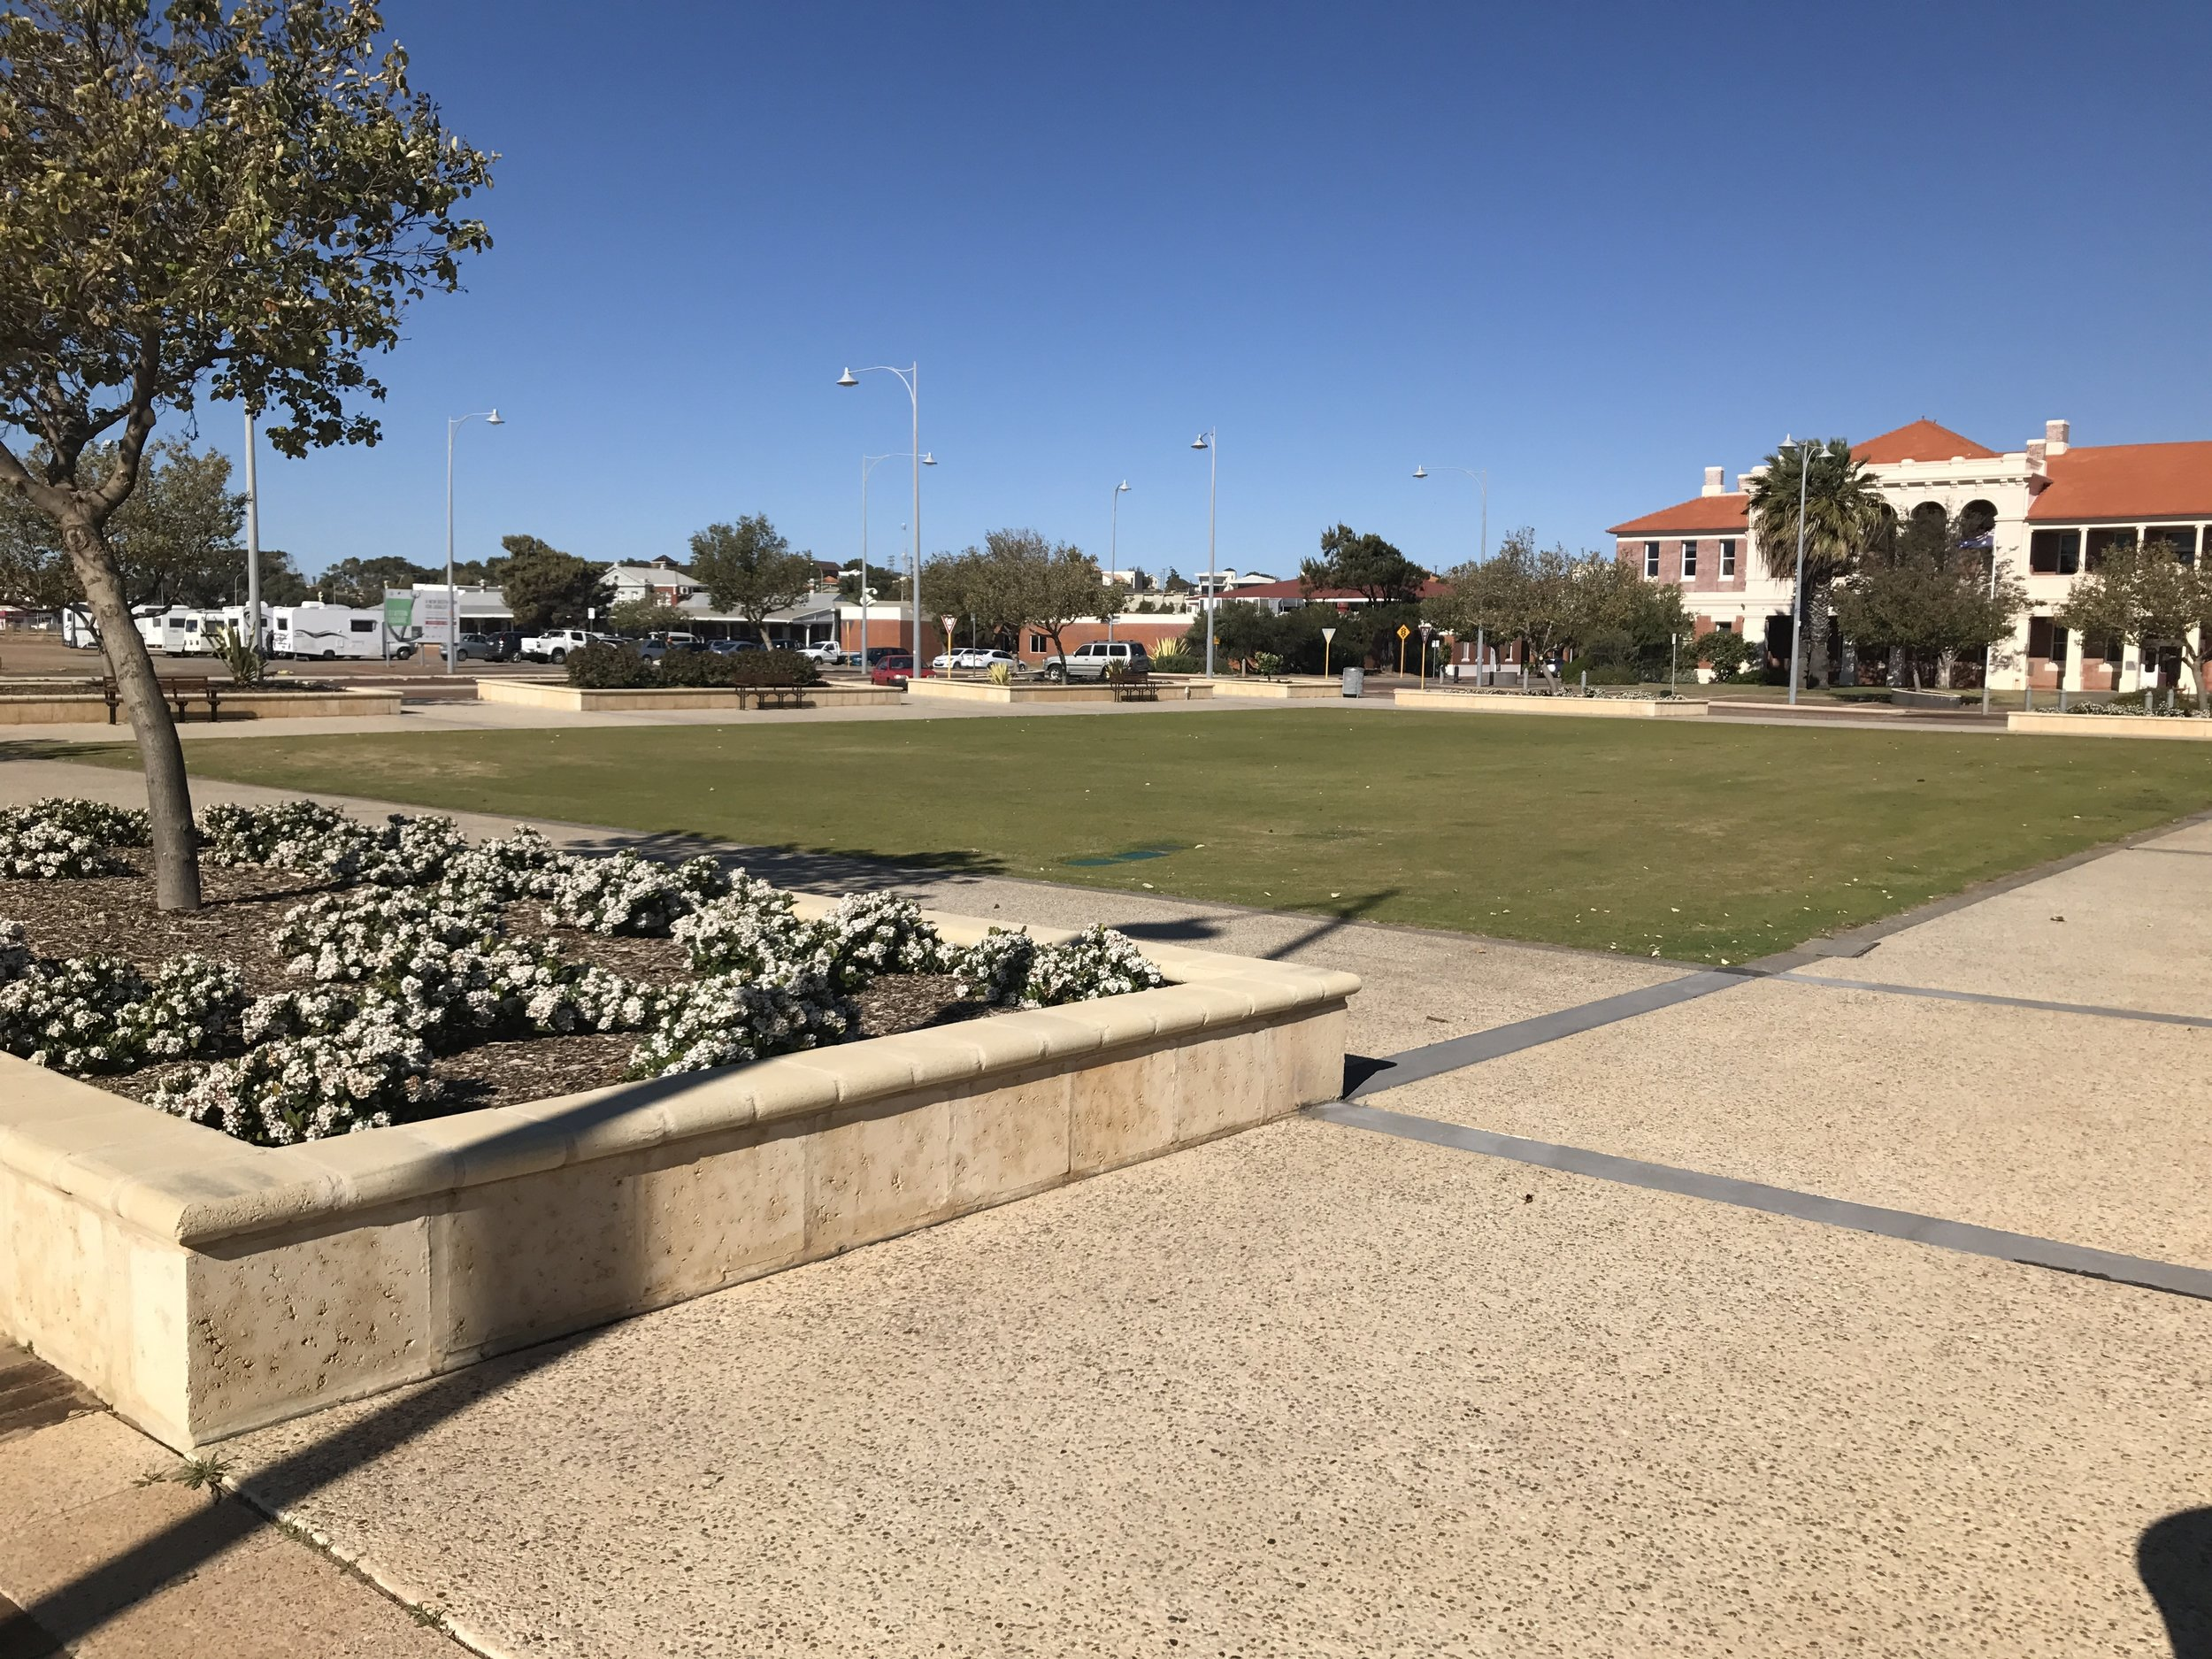 Edith Cowan Square is located in front of the Courthouse.